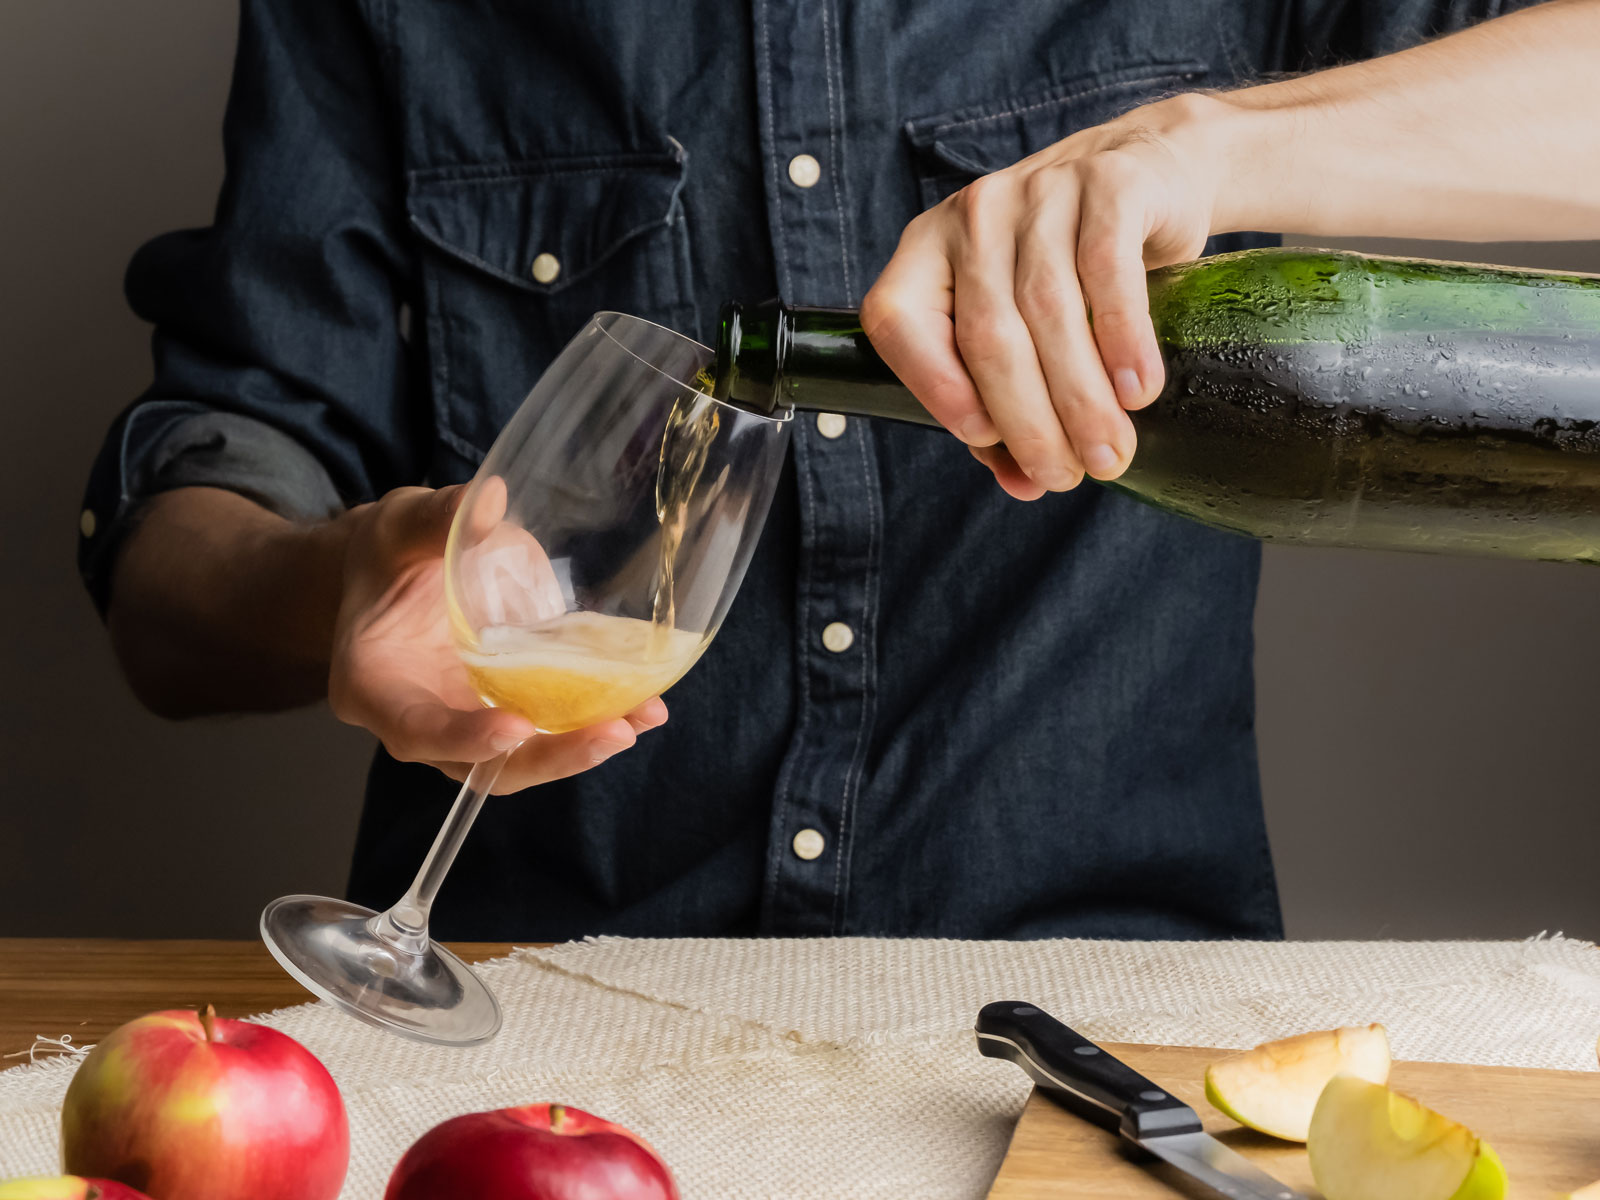 cider-for-thanksgiving-FT-BLOG1119.jpg